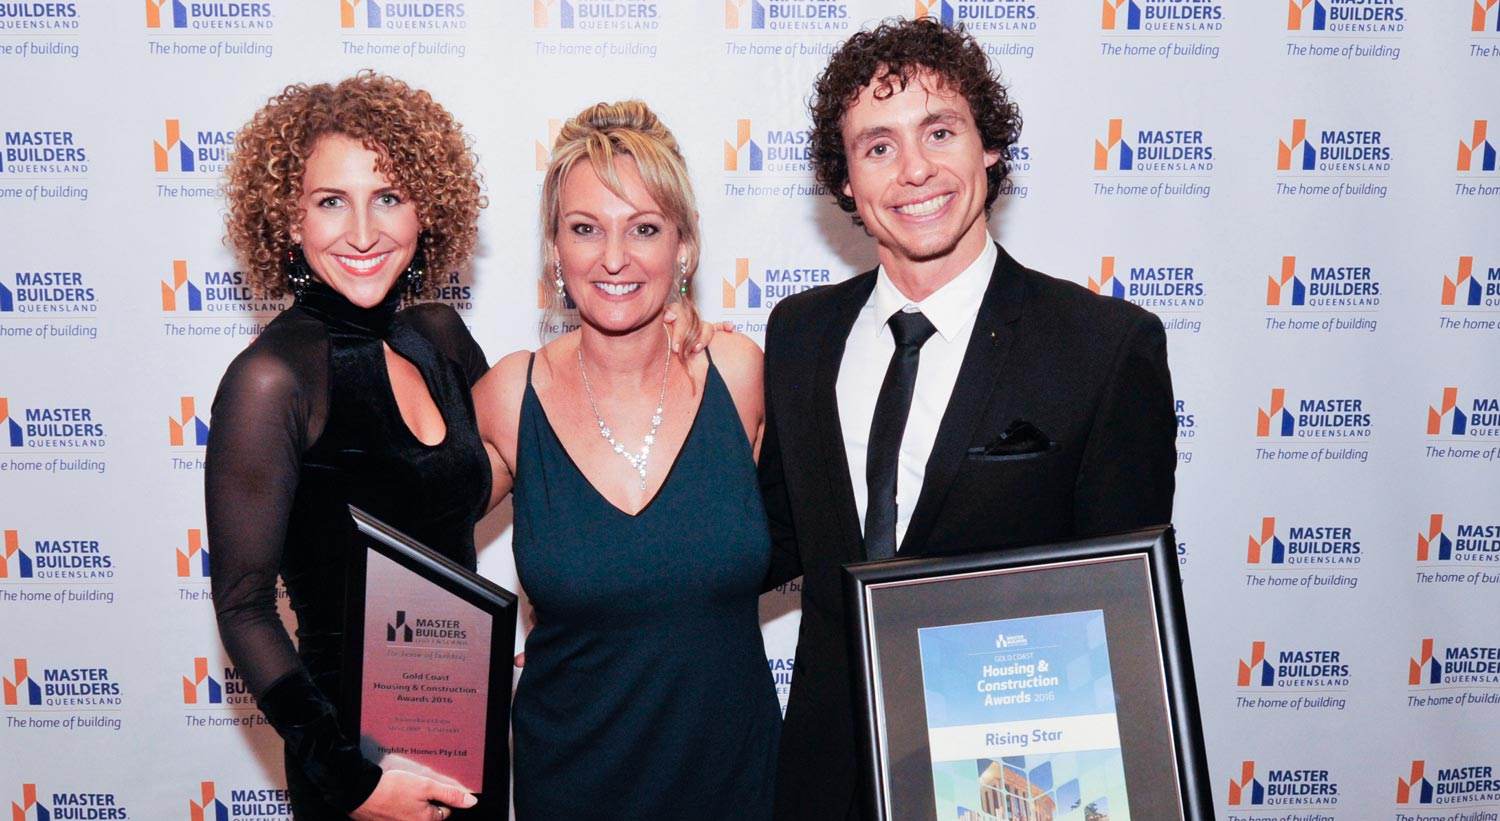 Custom home builder Highlife Homes winning Rising Star Builder and Best Home at the Master Buidlers Awards